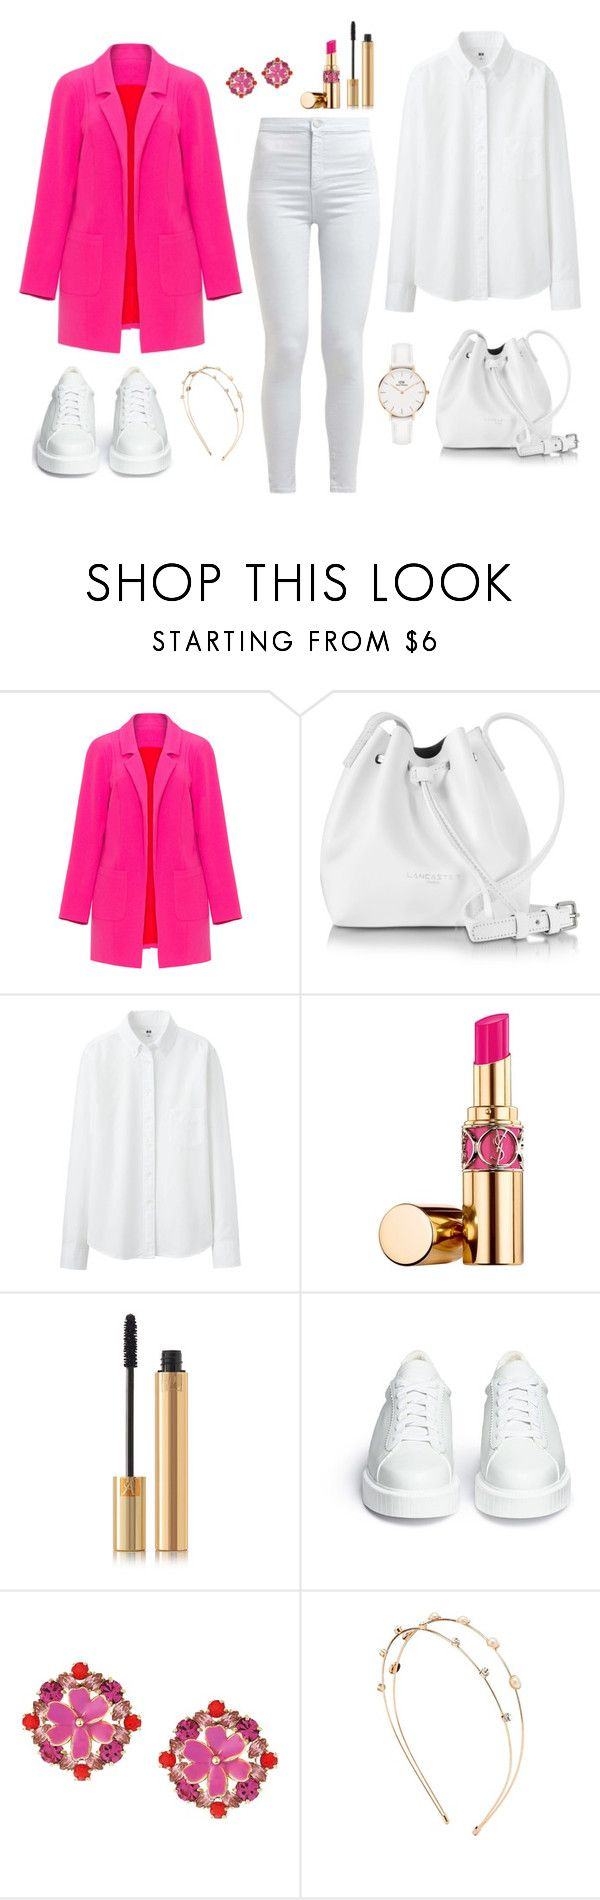 """Untitled #353"" by bajka2468 on Polyvore featuring Miss Selfridge, Lancaster, Uniqlo, Yves Saint Laurent, Robert Clergerie, Kate Spade, Charlotte Russe, Daniel Wellington and CoffeeDate"